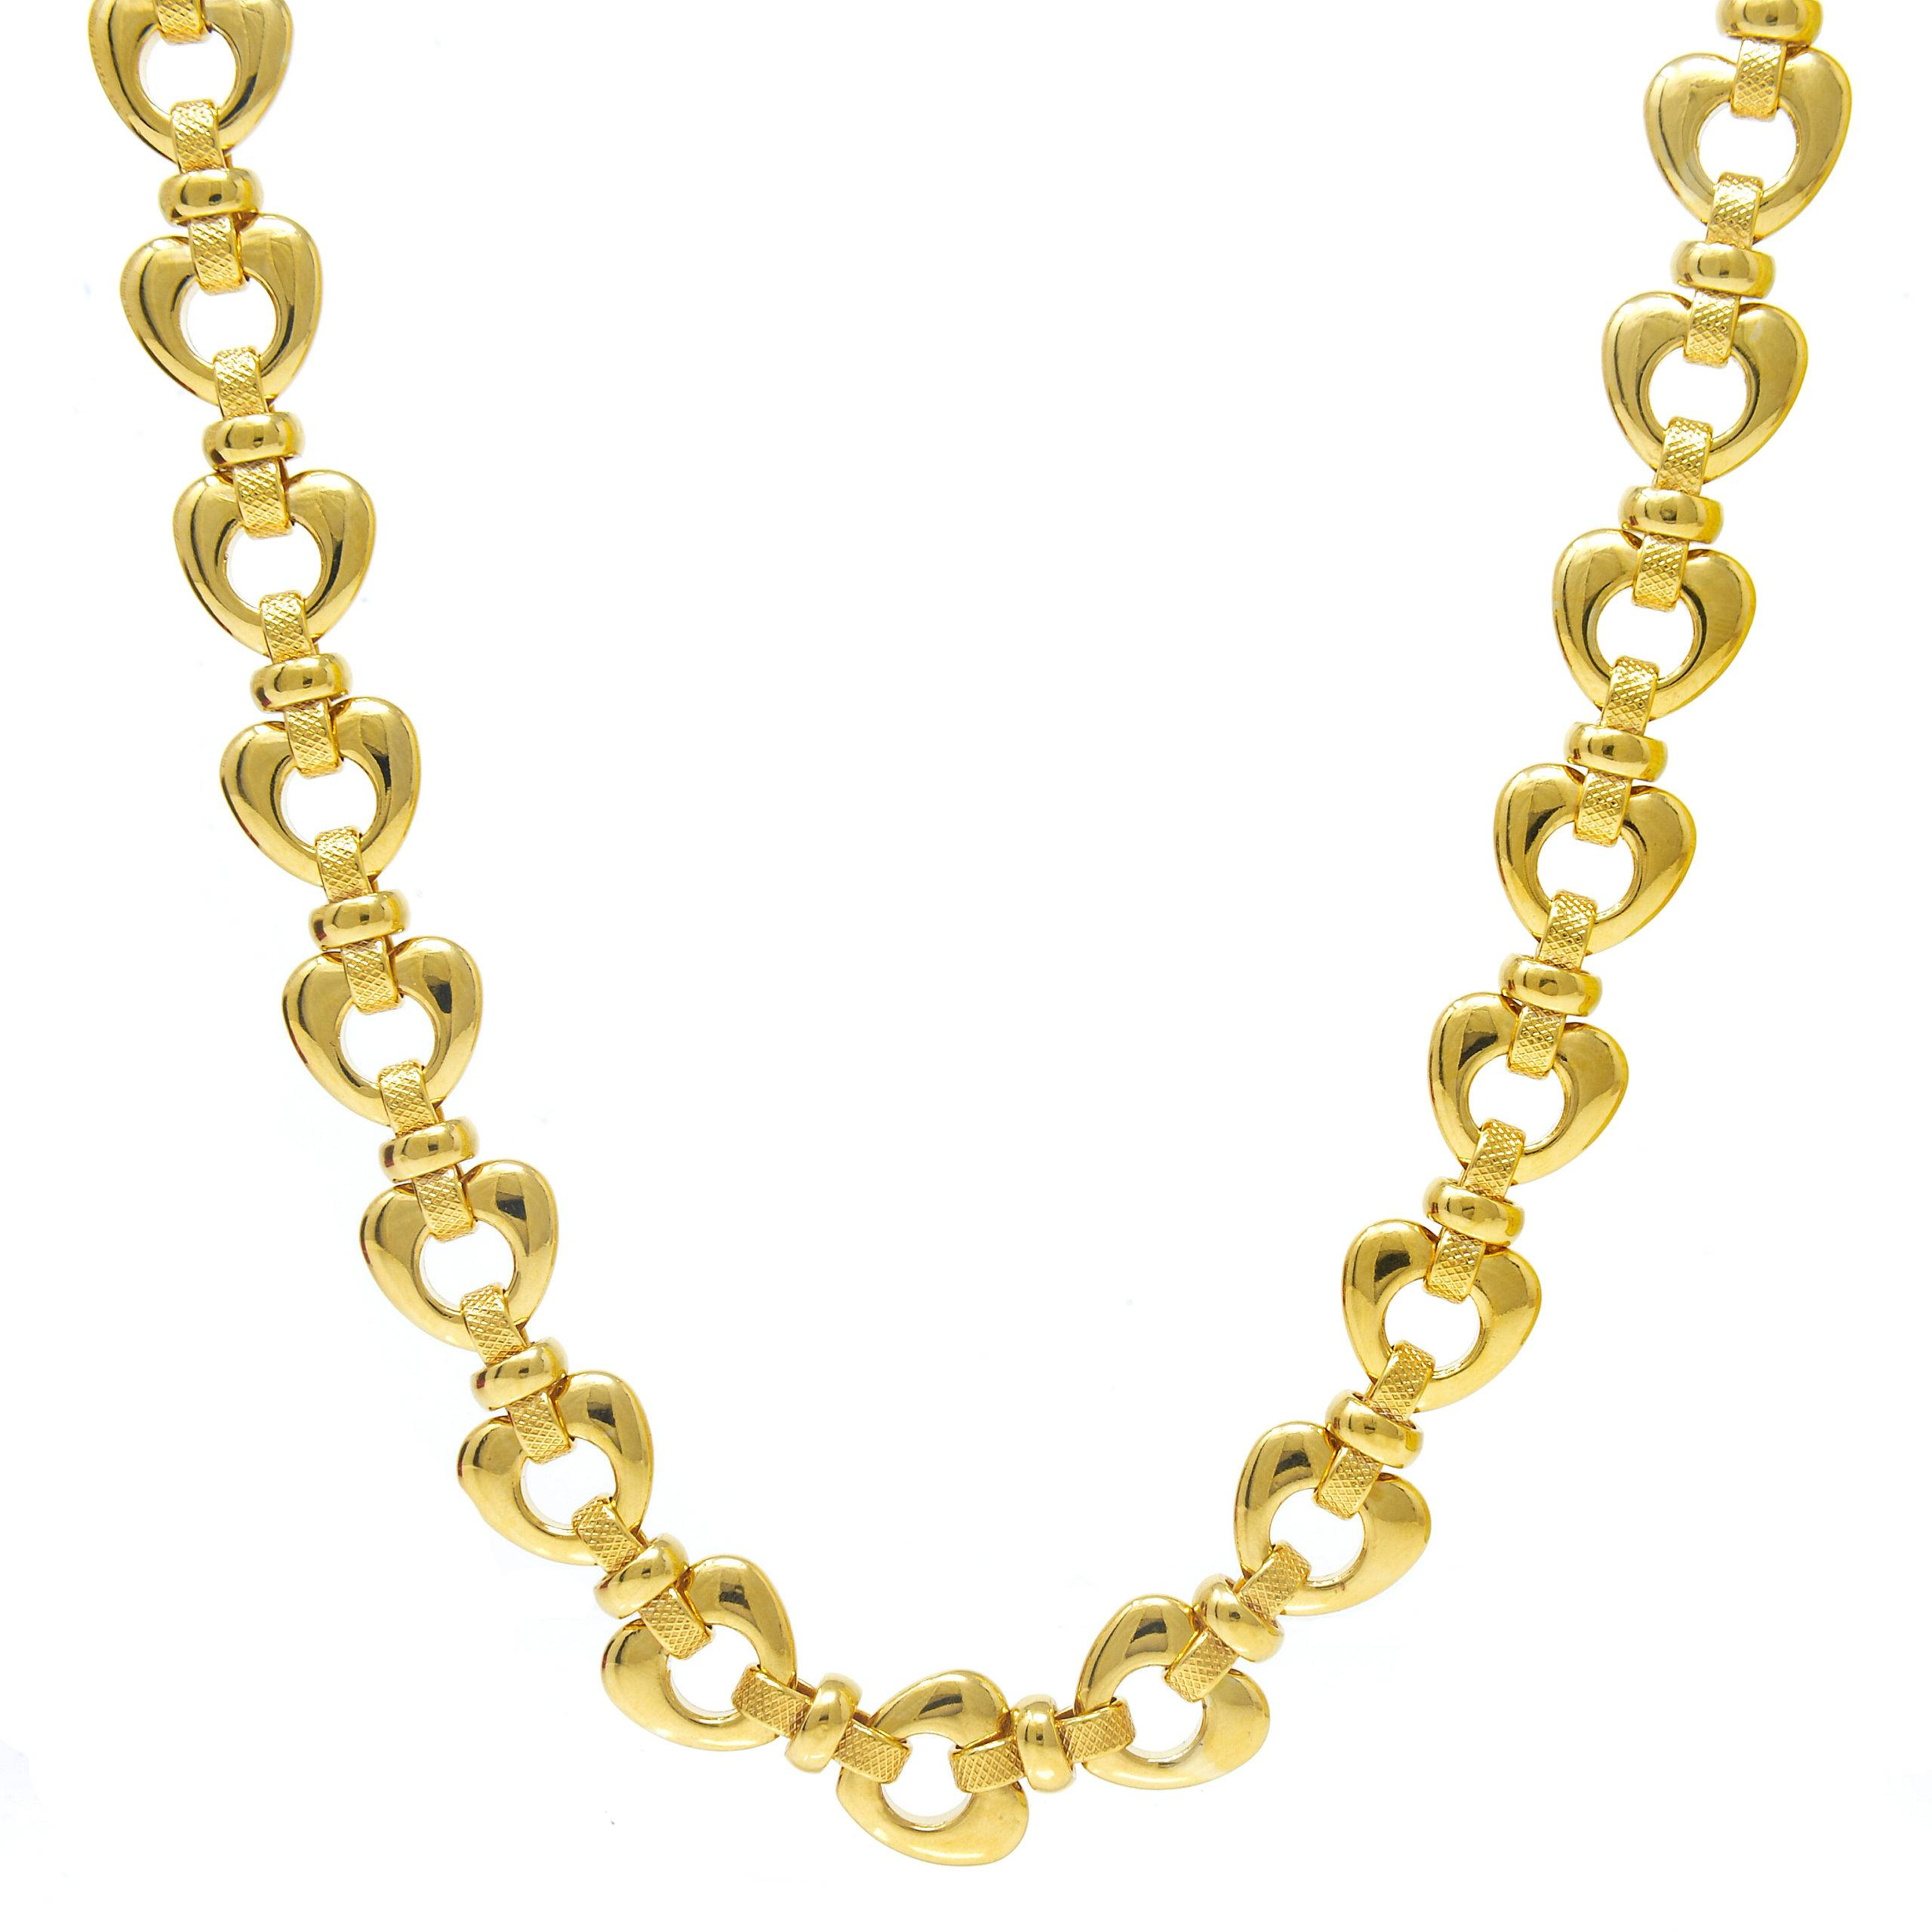 COLLIER MAILLE FORME COEUR 45CM